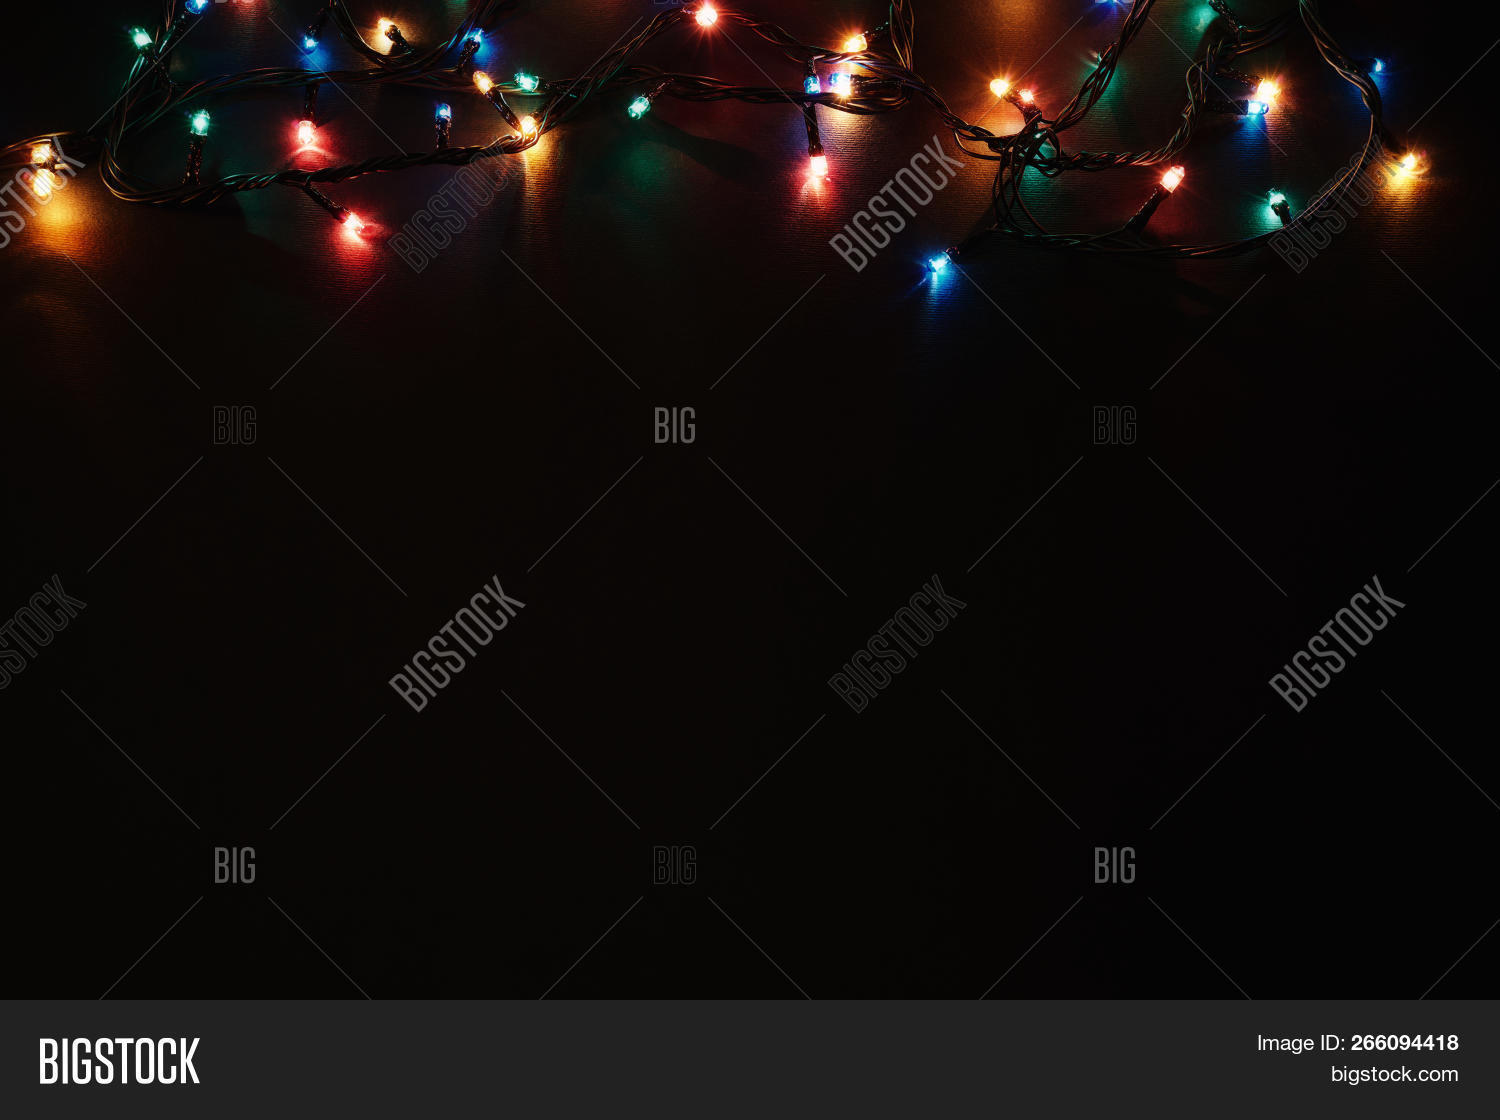 Colorful Christmas Lights Background.Christmas Background Image Photo Free Trial Bigstock